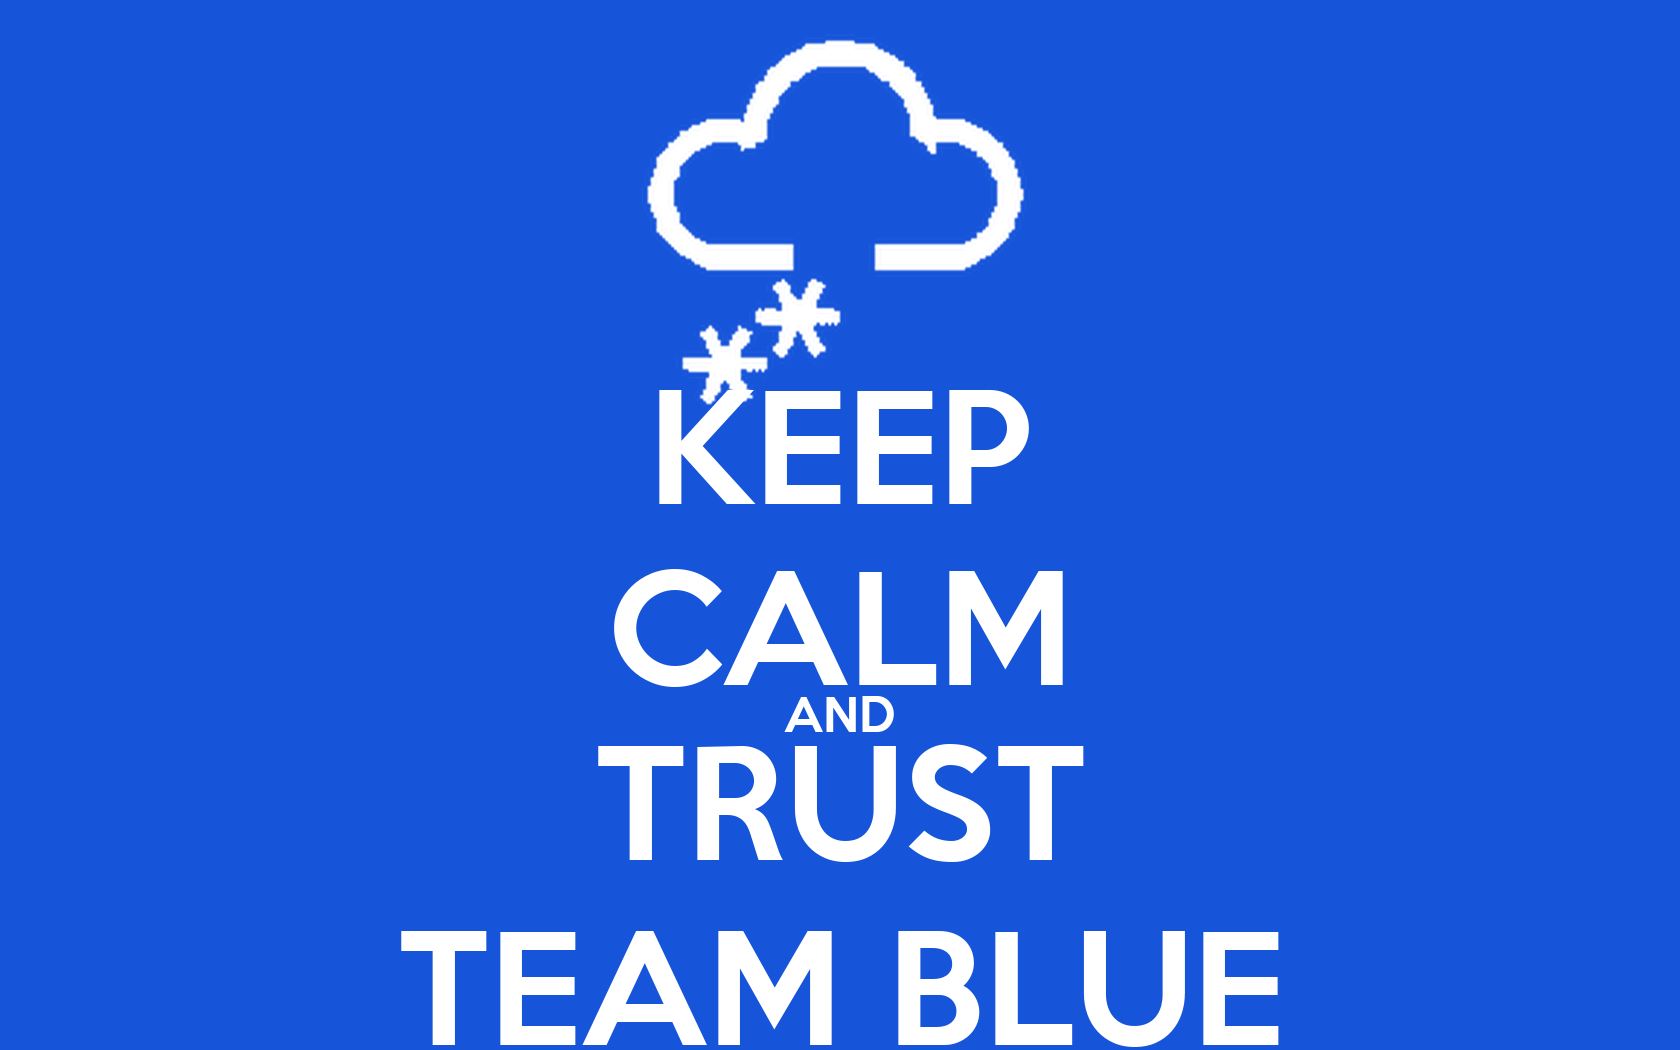 Wall Stickers Sale Keep Calm And Trust Team Blue Poster Asdasd Keep Calm